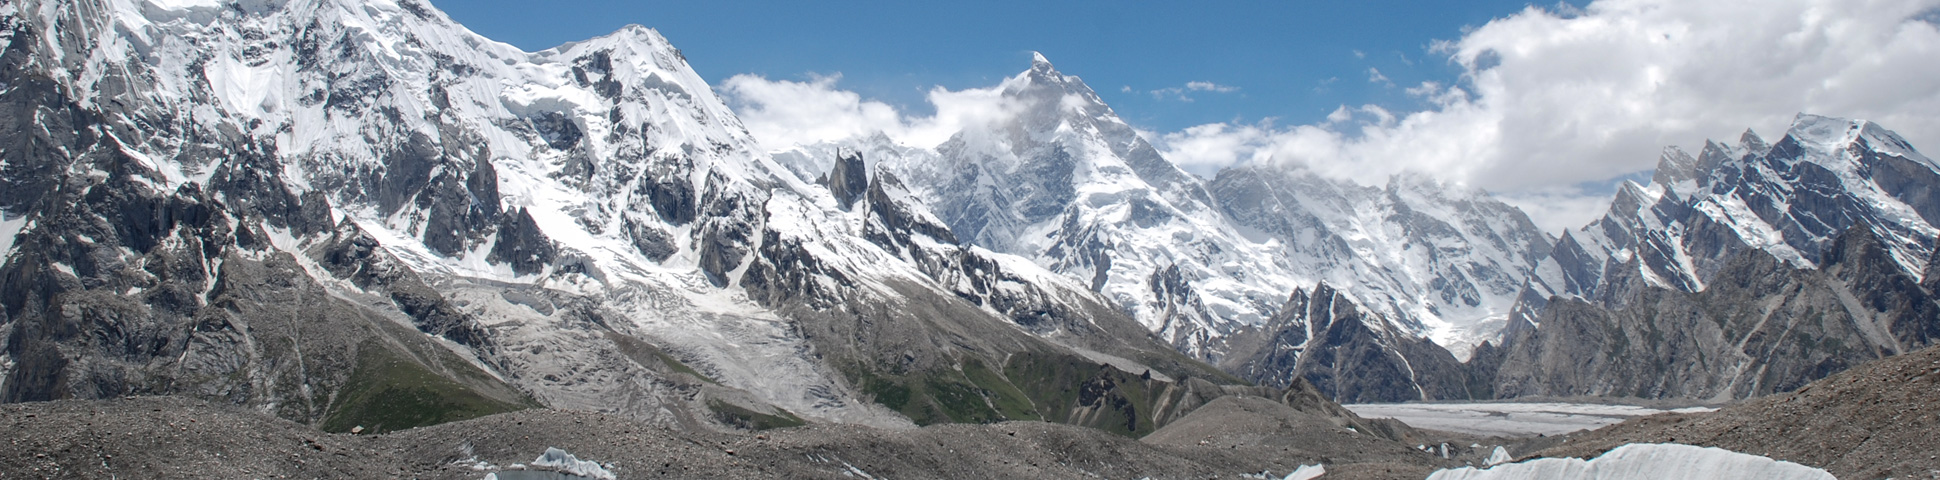 Panoramic mountain view on guided trekking tour to K2 Base Camp in Pakistan